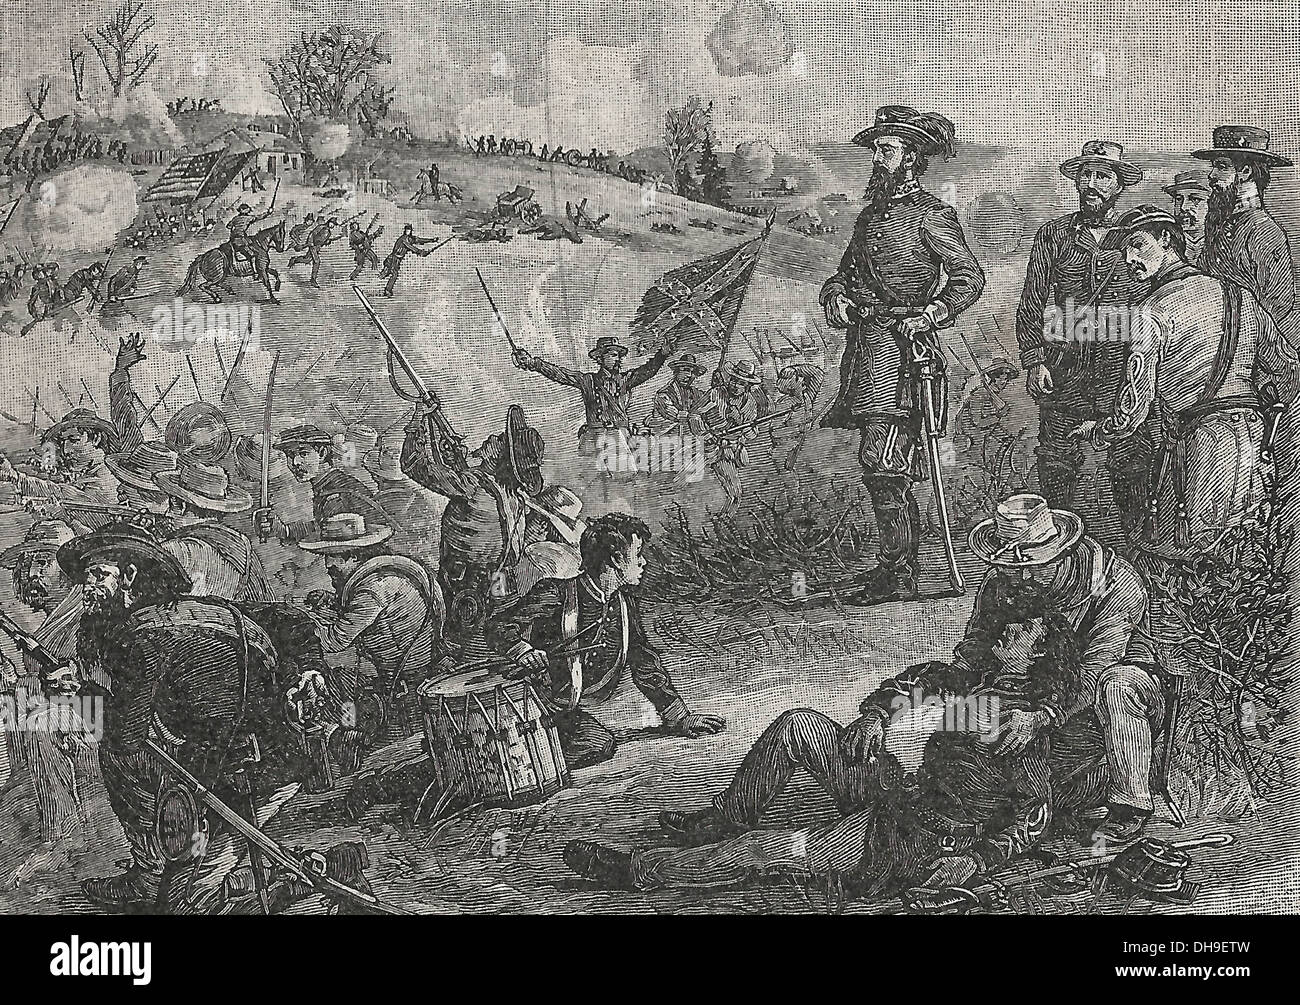 Stonewall Jackson at the Battle of Bull Run - 1861 - Stock Image